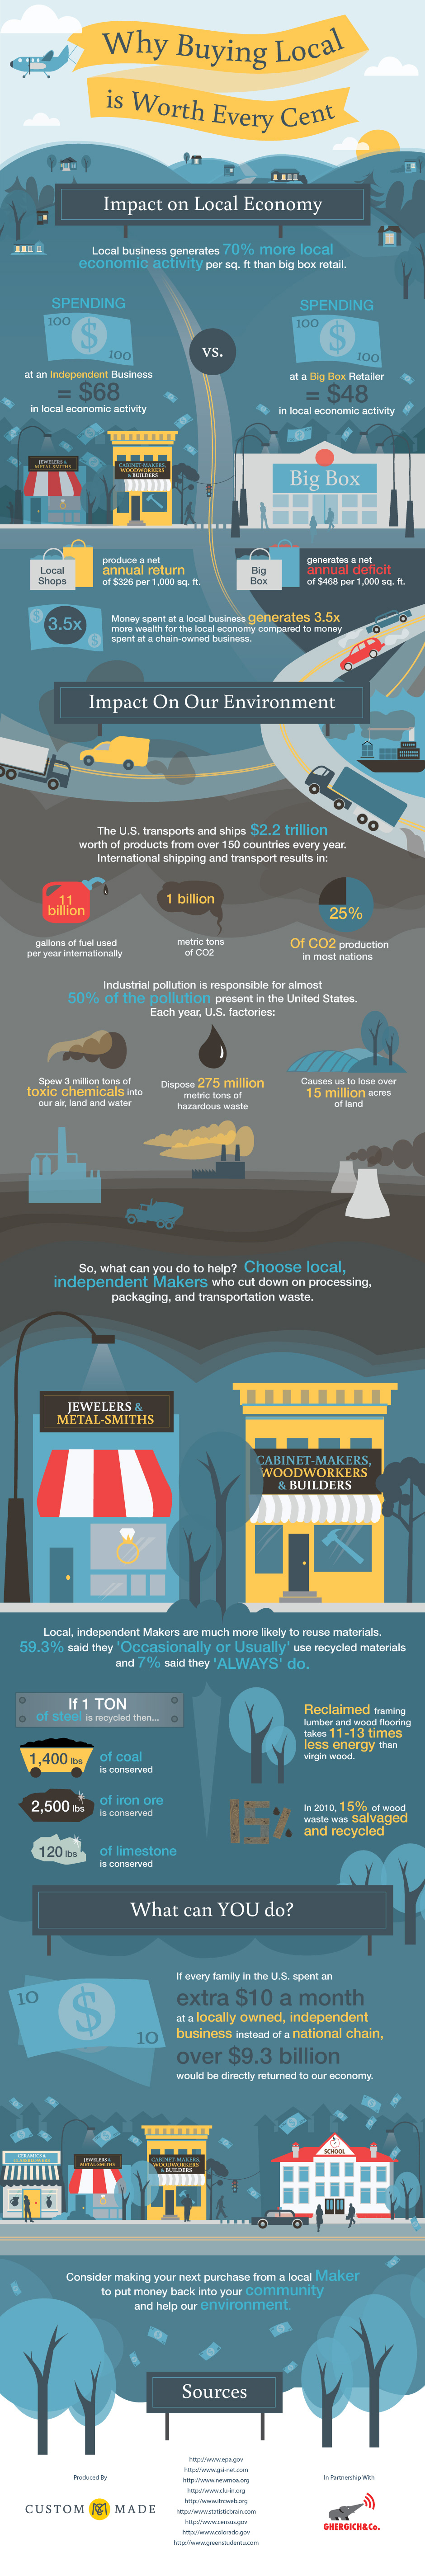 buylocalinfographic-huffingtonpost